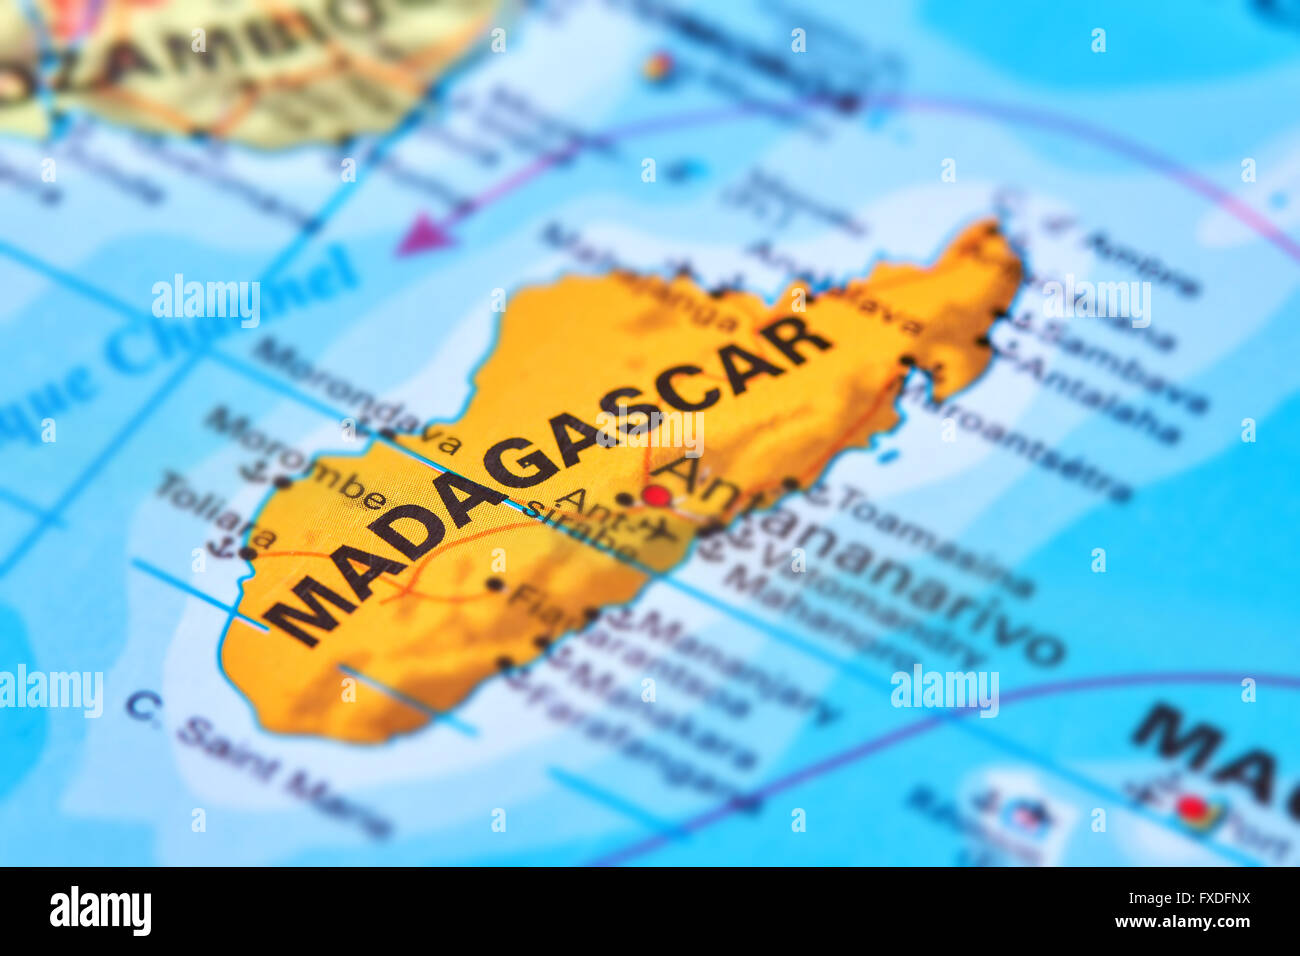 Madagascar island country on the world map stock photo 102330646 madagascar island country on the world map gumiabroncs Images